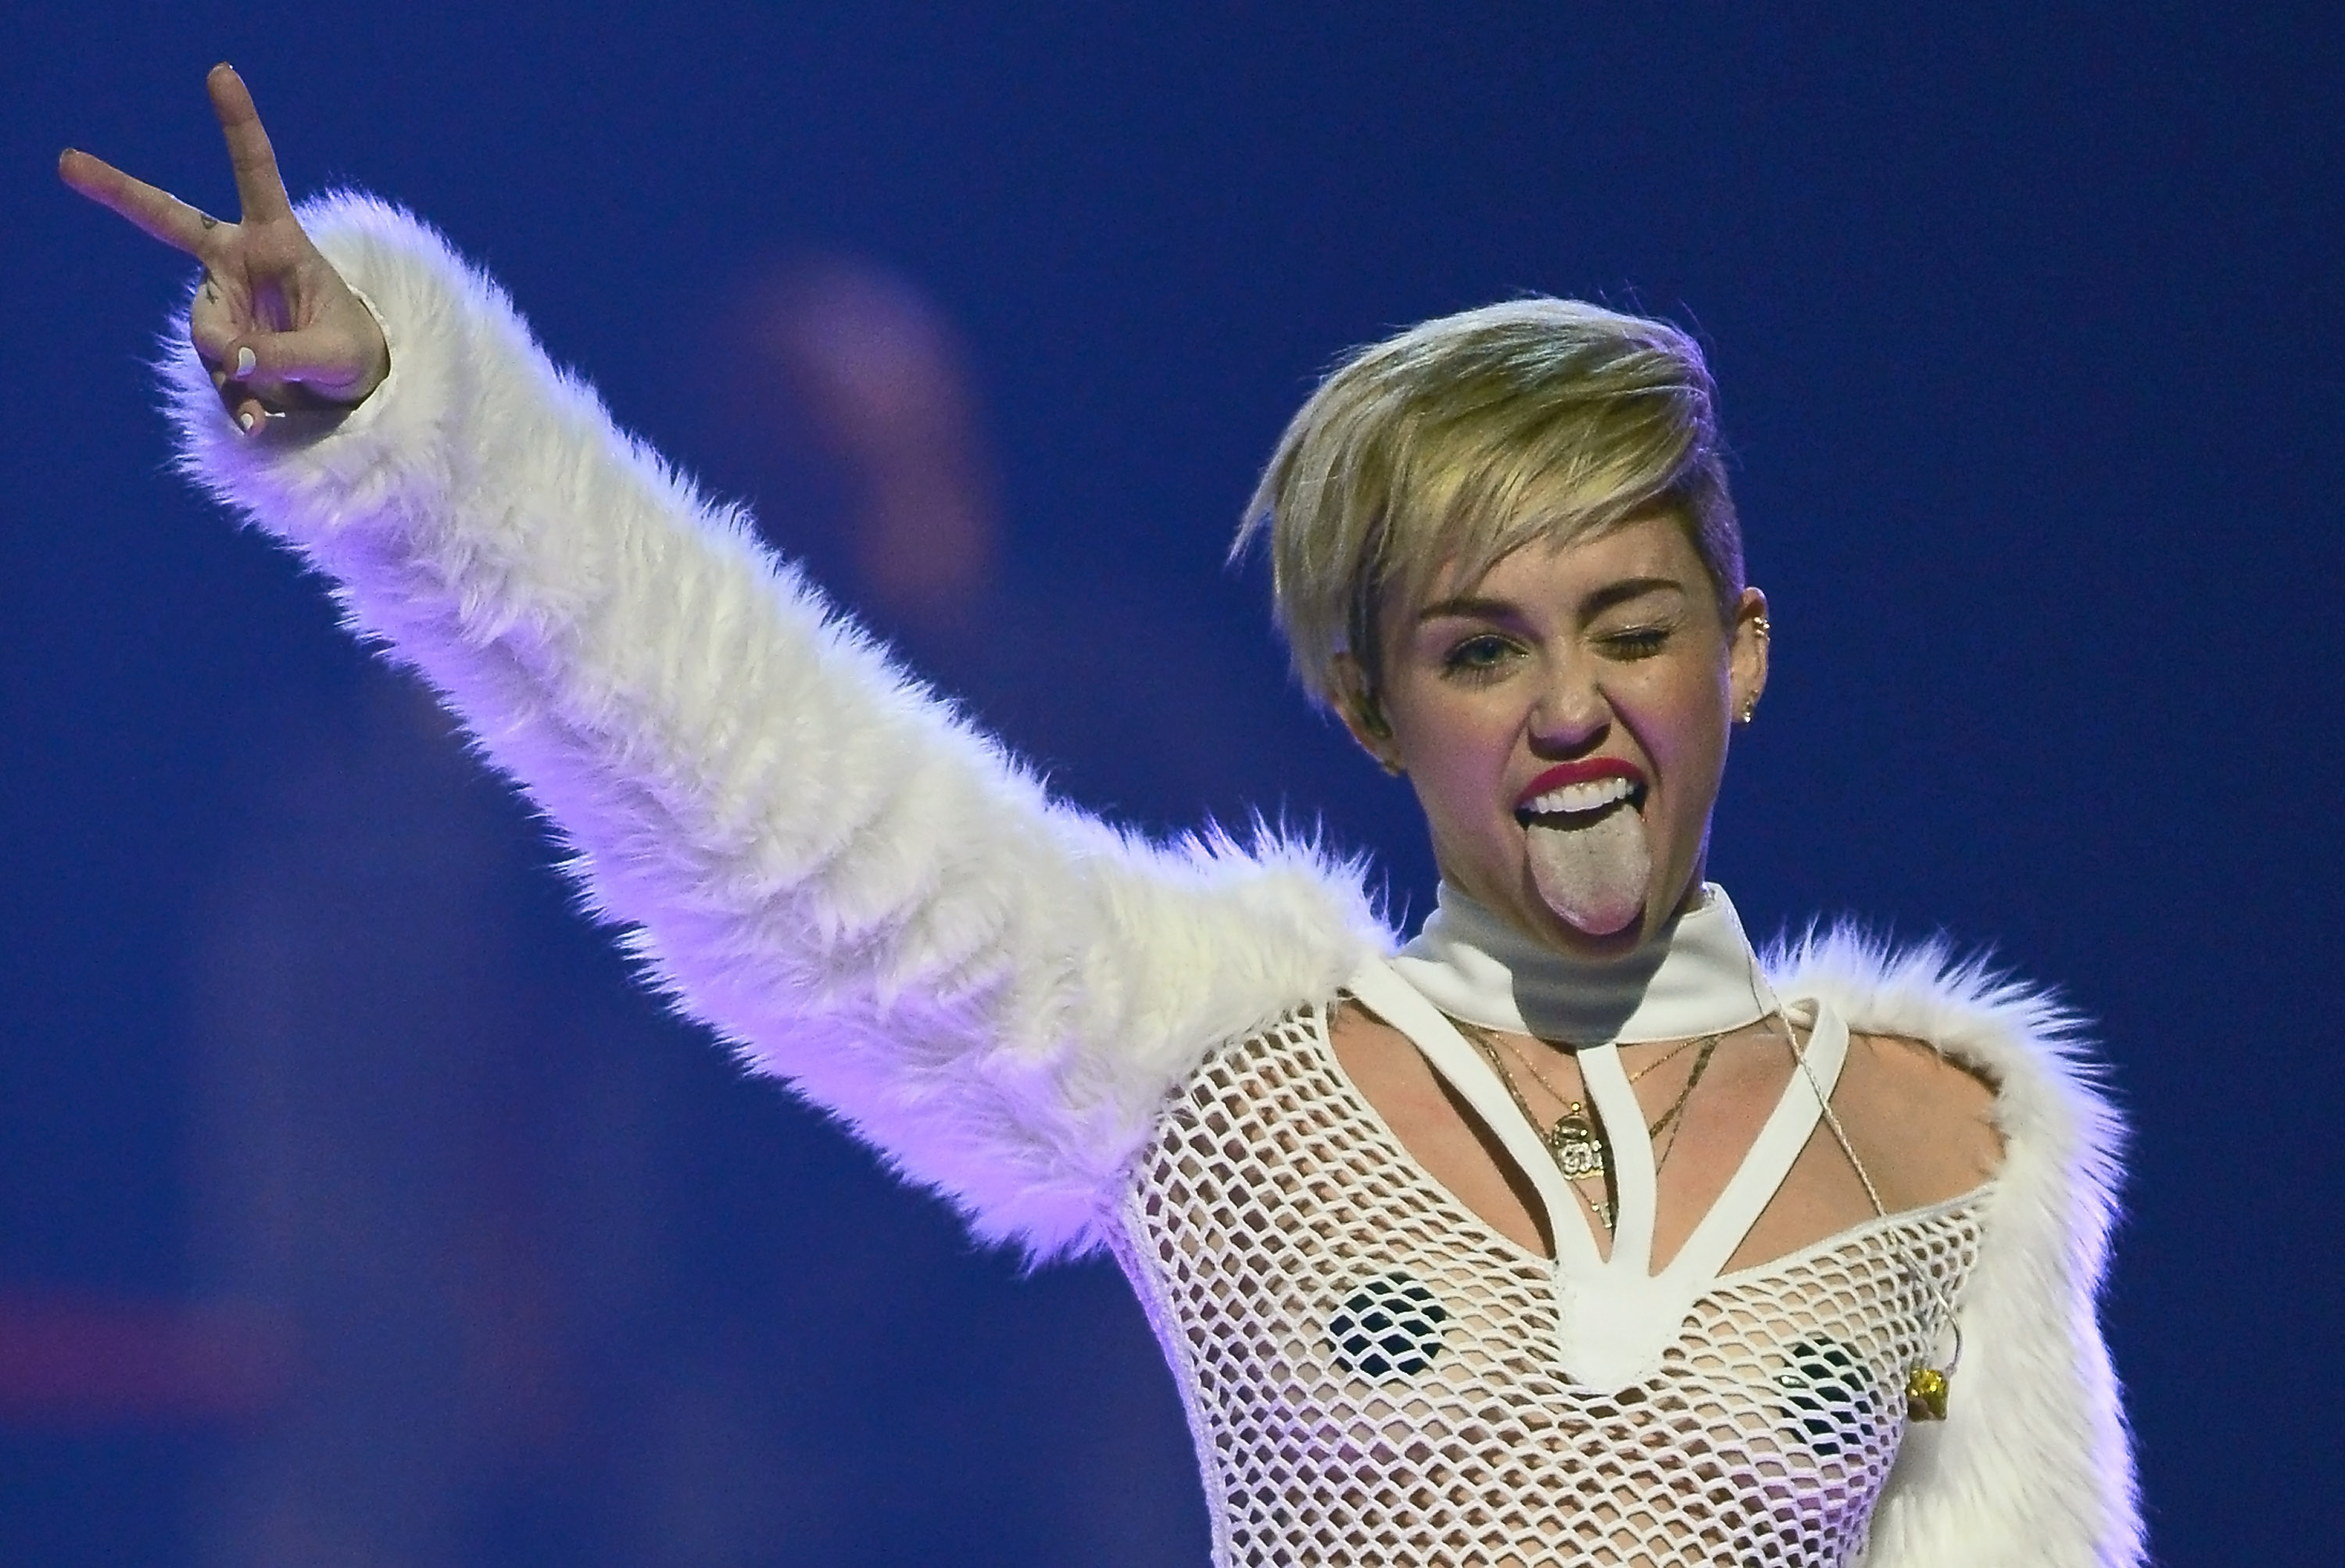 LAS VEGAS, NV - SEPTEMBER 21:  Entertainer Miley Cyrus winks and sticks out her tongue as she performs during the iHeartRadio